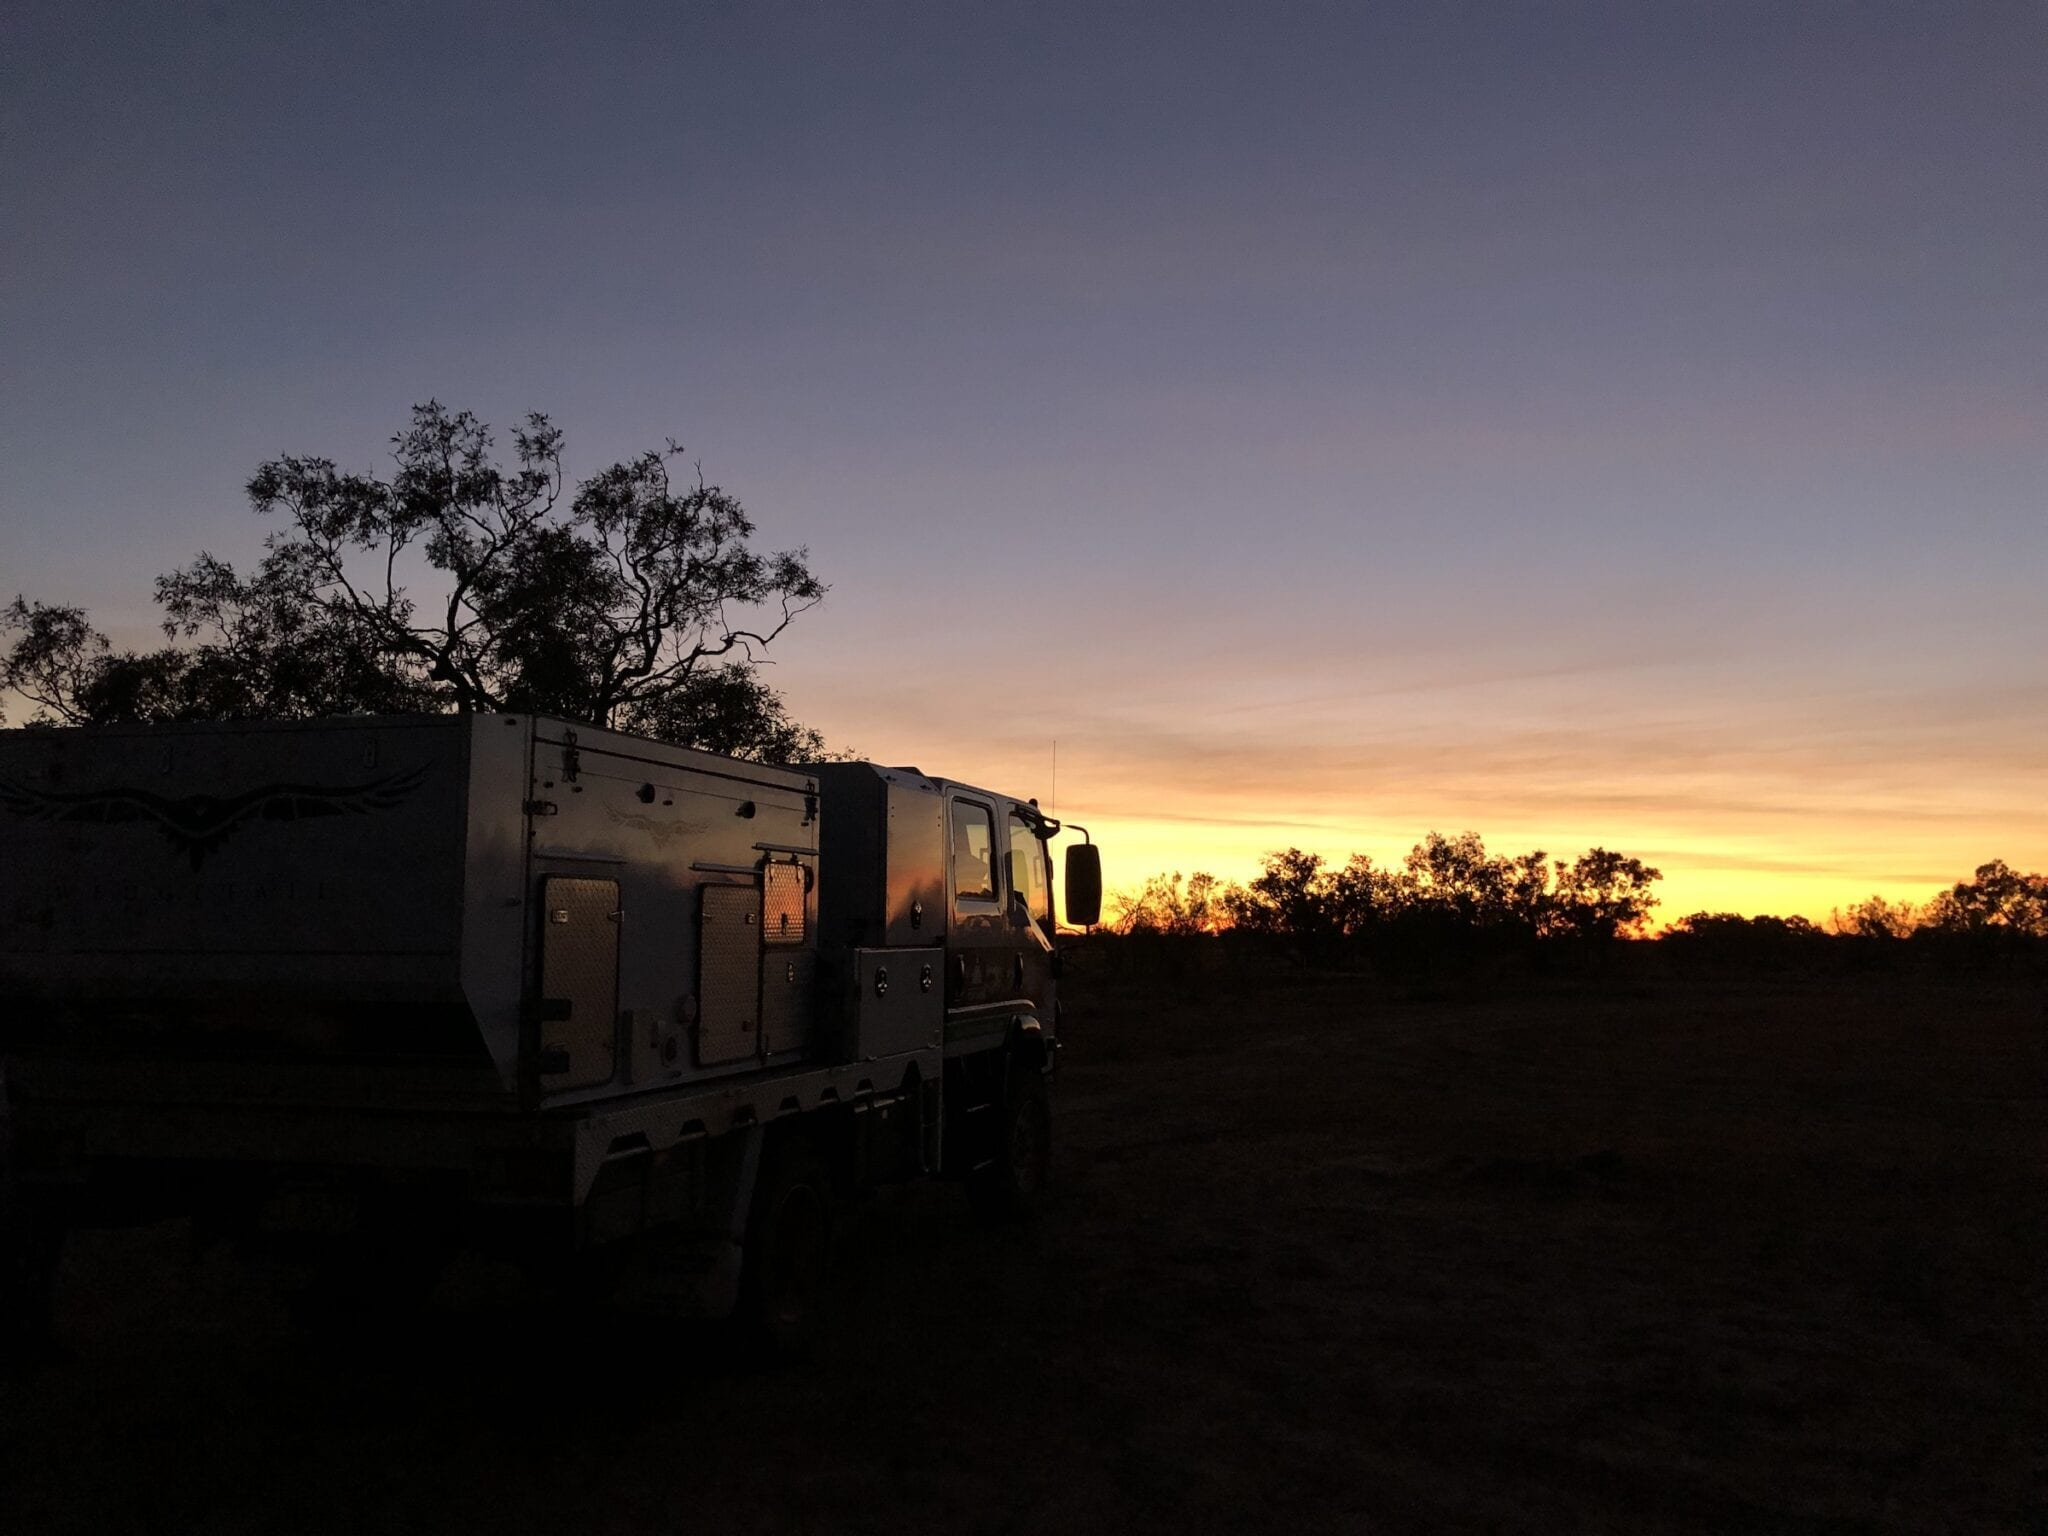 An inspiring sunrise in South_West Queensland. Long-term travel.